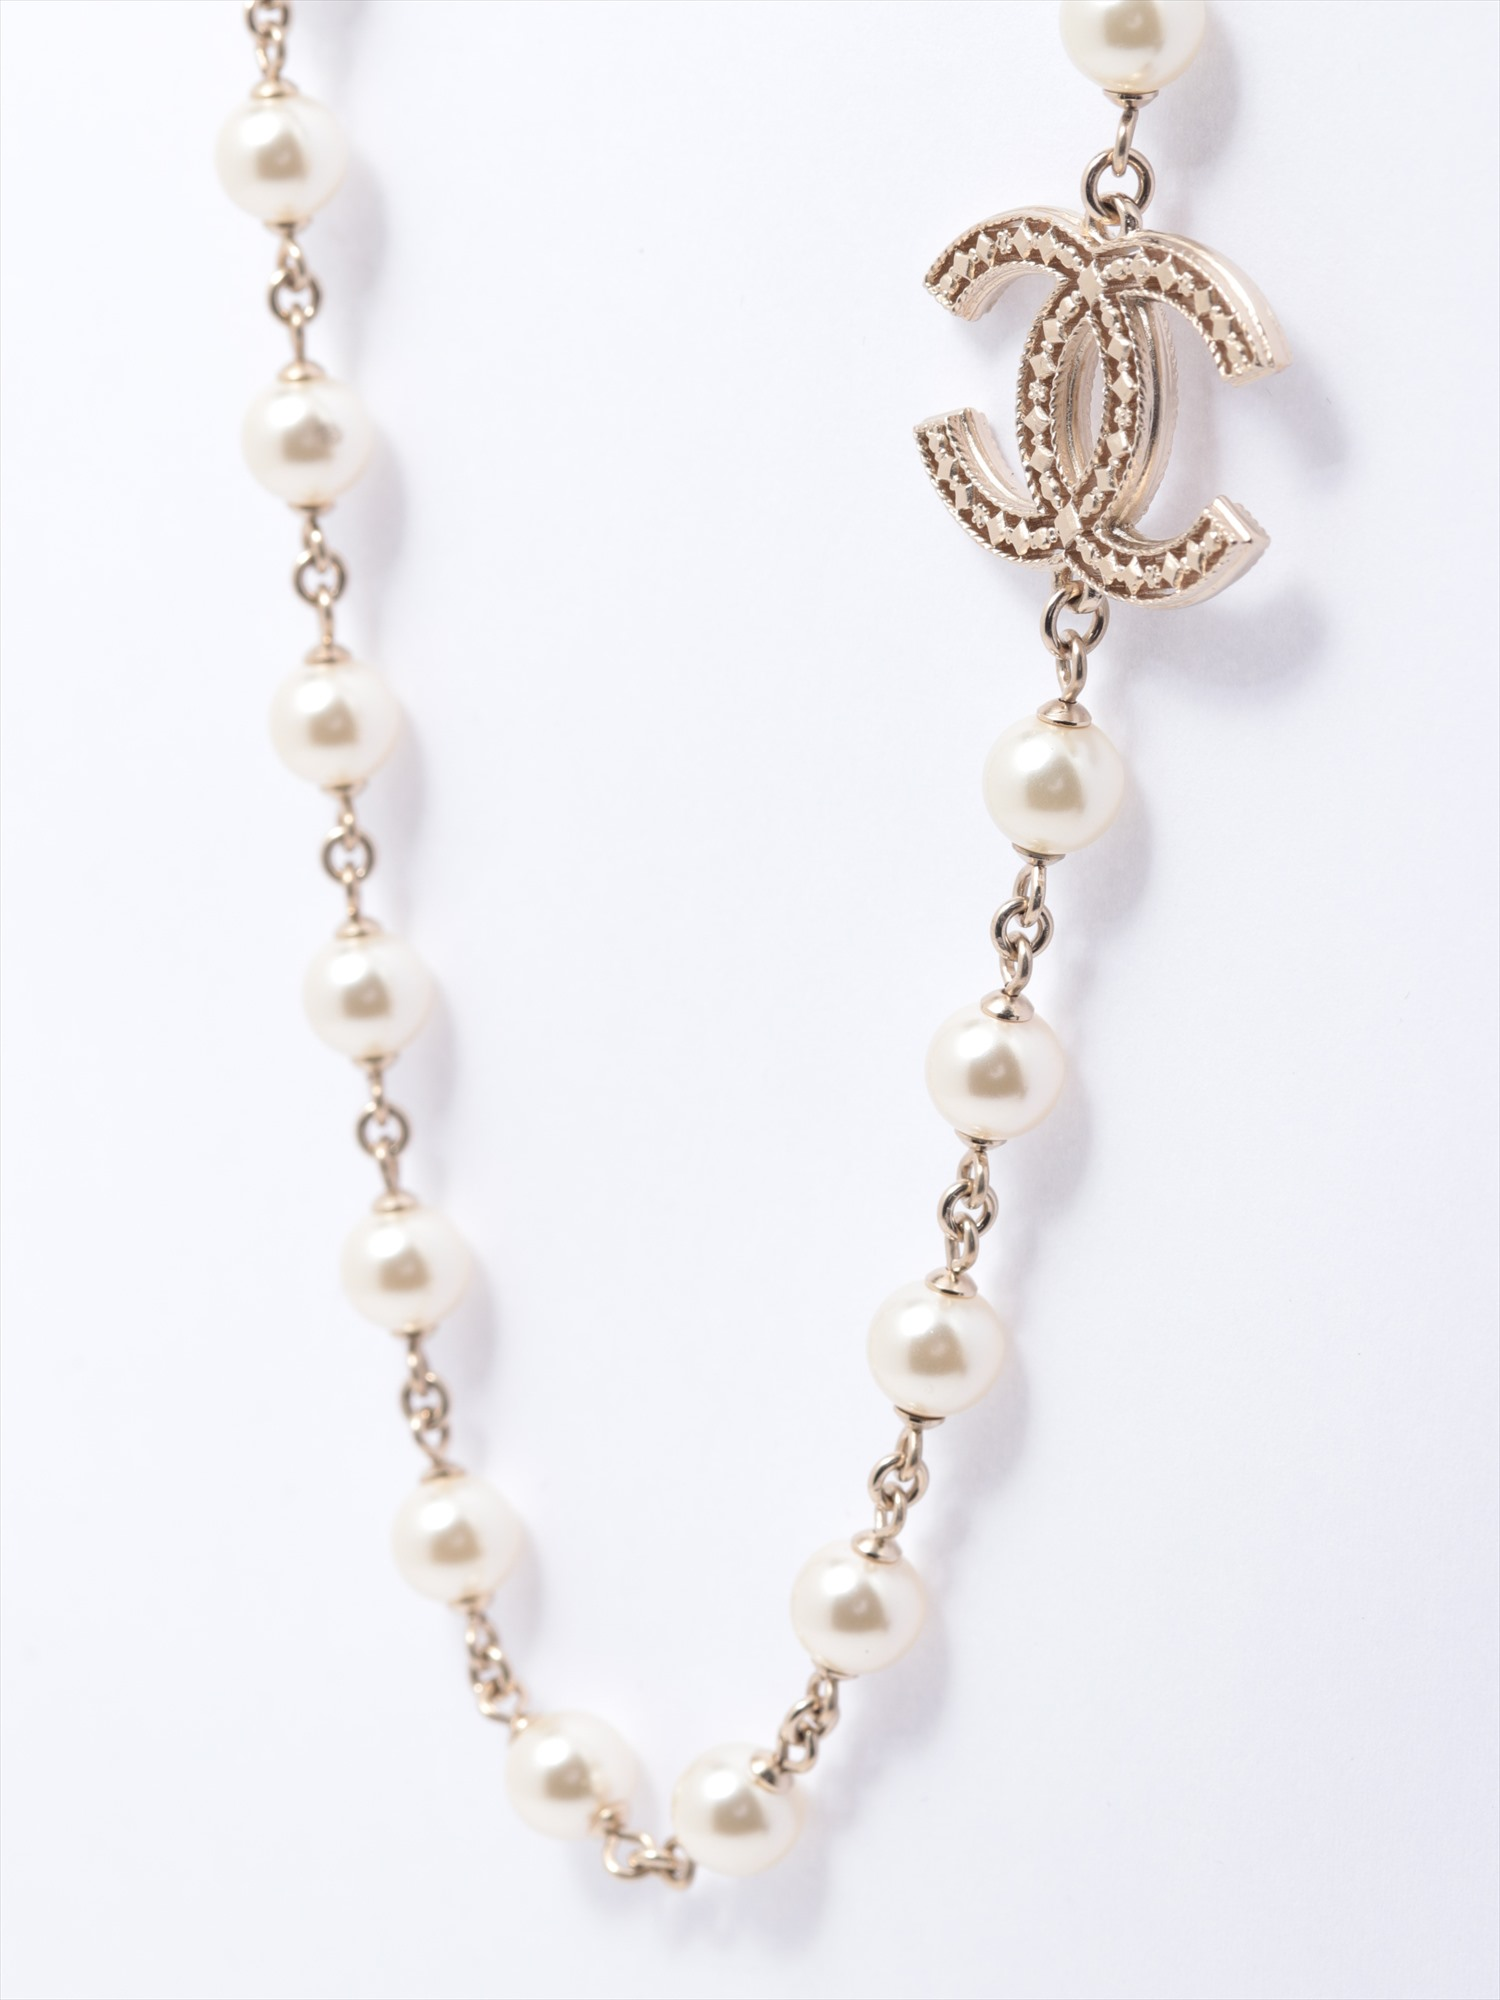 [Used goods] Chanel Coco mark necklace GP Gold fake pearl A15V